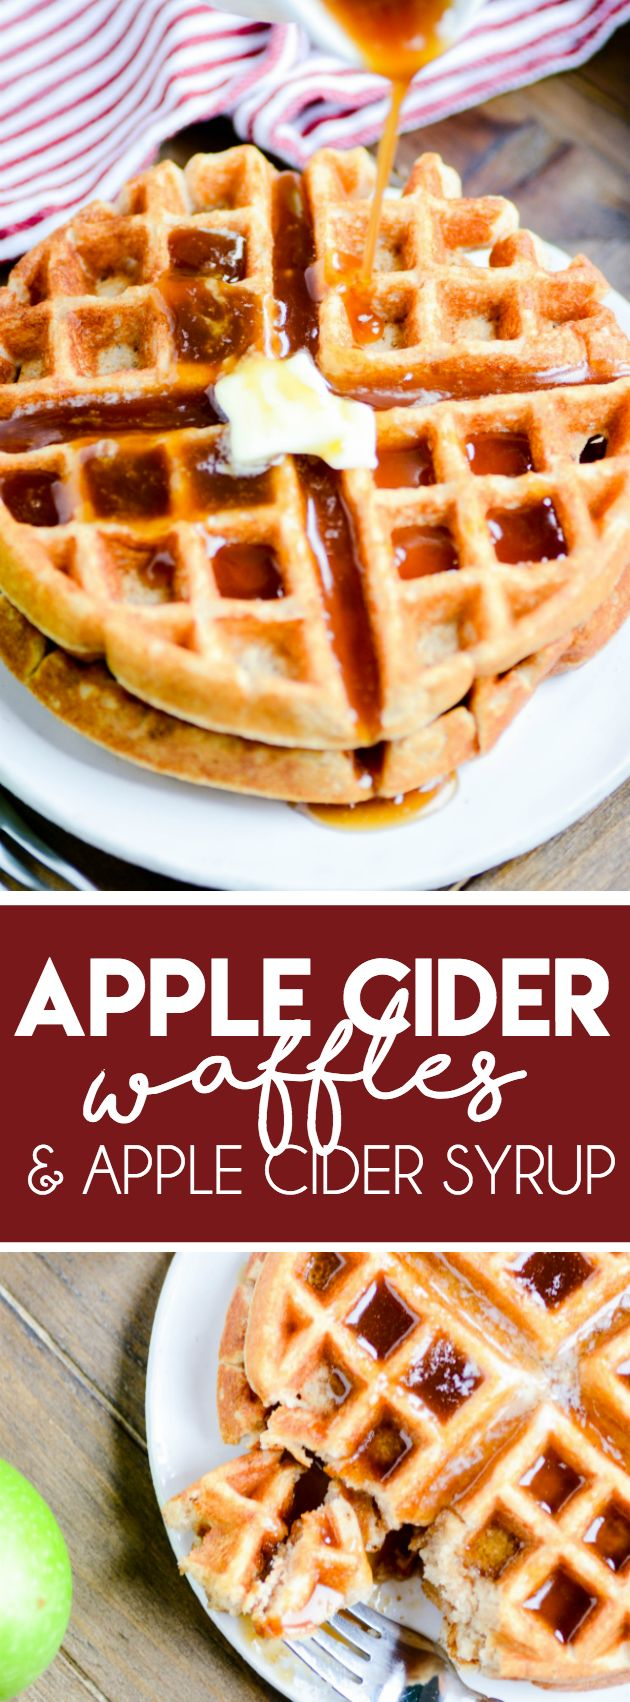 Apple Cider Buttermilk Waffles & Caramel Apple Cider Syrup http://www.somethingswanky.com/apple-cider-buttermilk-waffles-caramel-apple-cider-syrup/?utm_campaign=coschedule&utm_source=pinterest&utm_medium=Something%20Swanky&utm_content=Apple%20Cider%20Buttermilk%20Waffles%20and%20Caramel%20Apple%20Cider%20Syrup